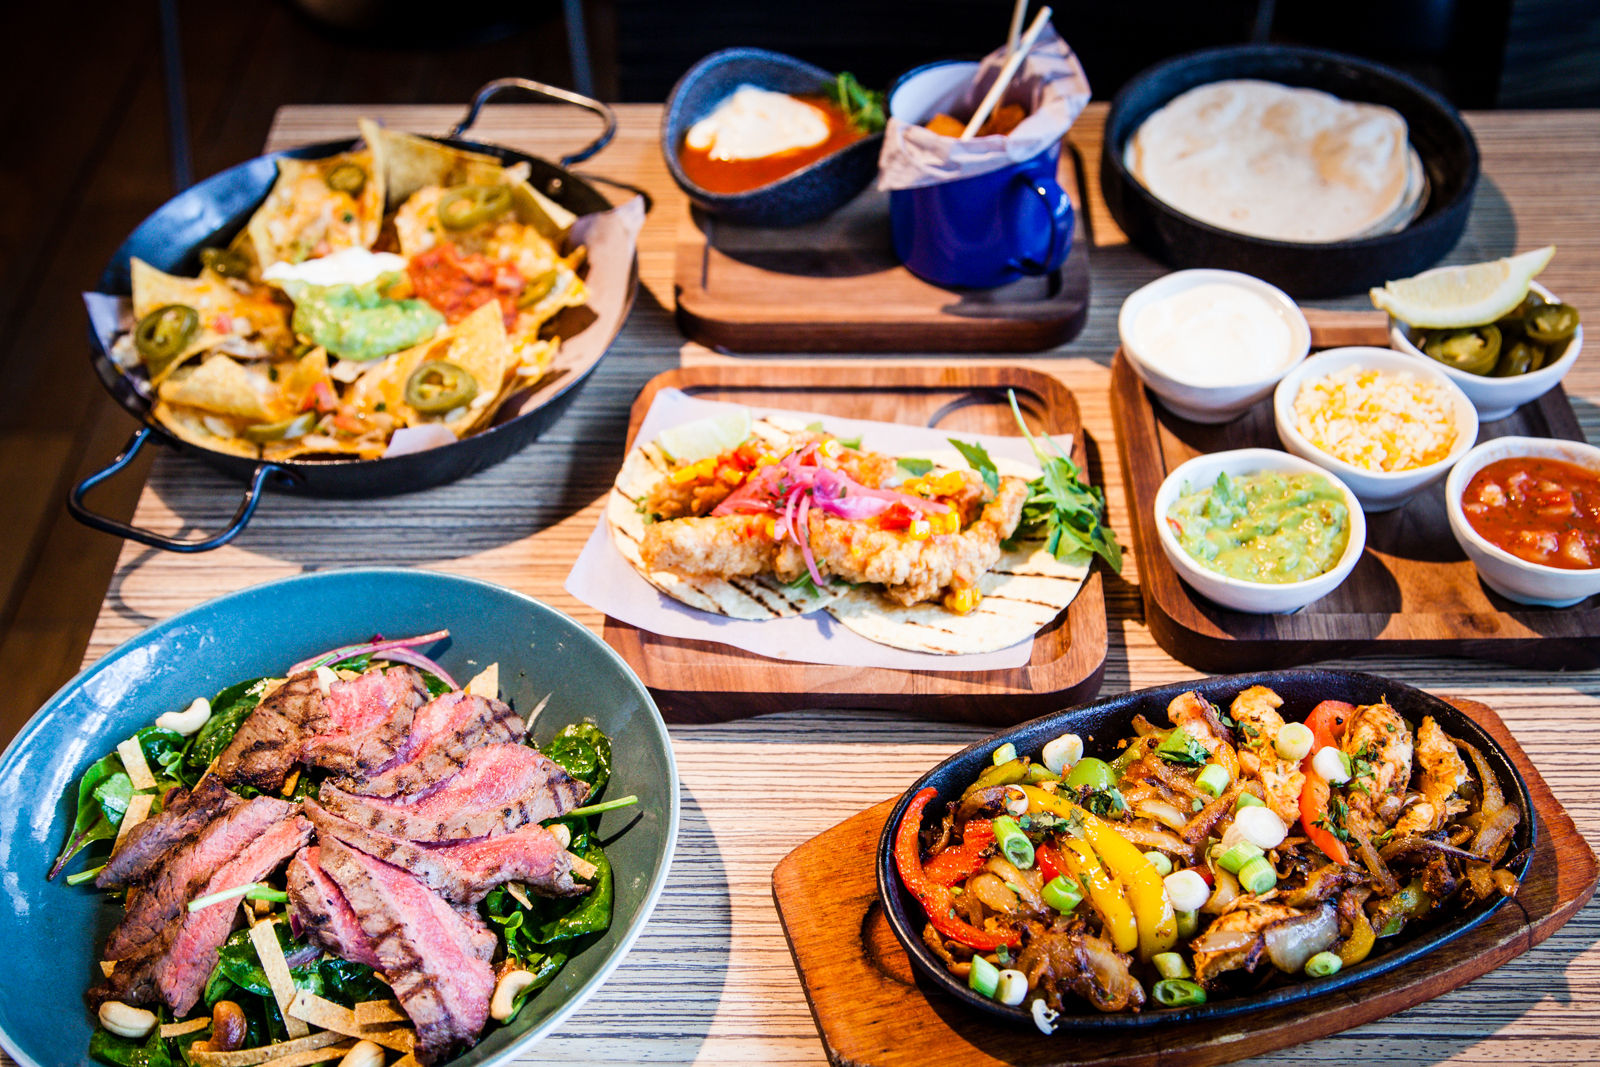 Reserve a table at Las Iguanas - Bath